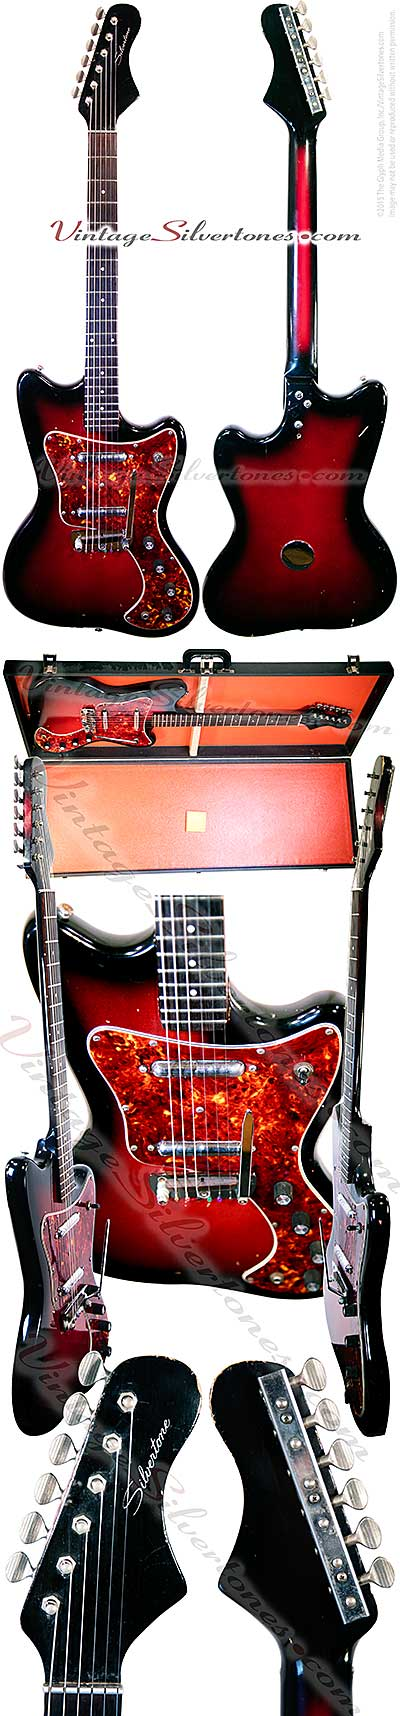 Silvertone - Danelectro-made - 1452 solid body electric guitar, tortoise shell pickguard, circa 1965